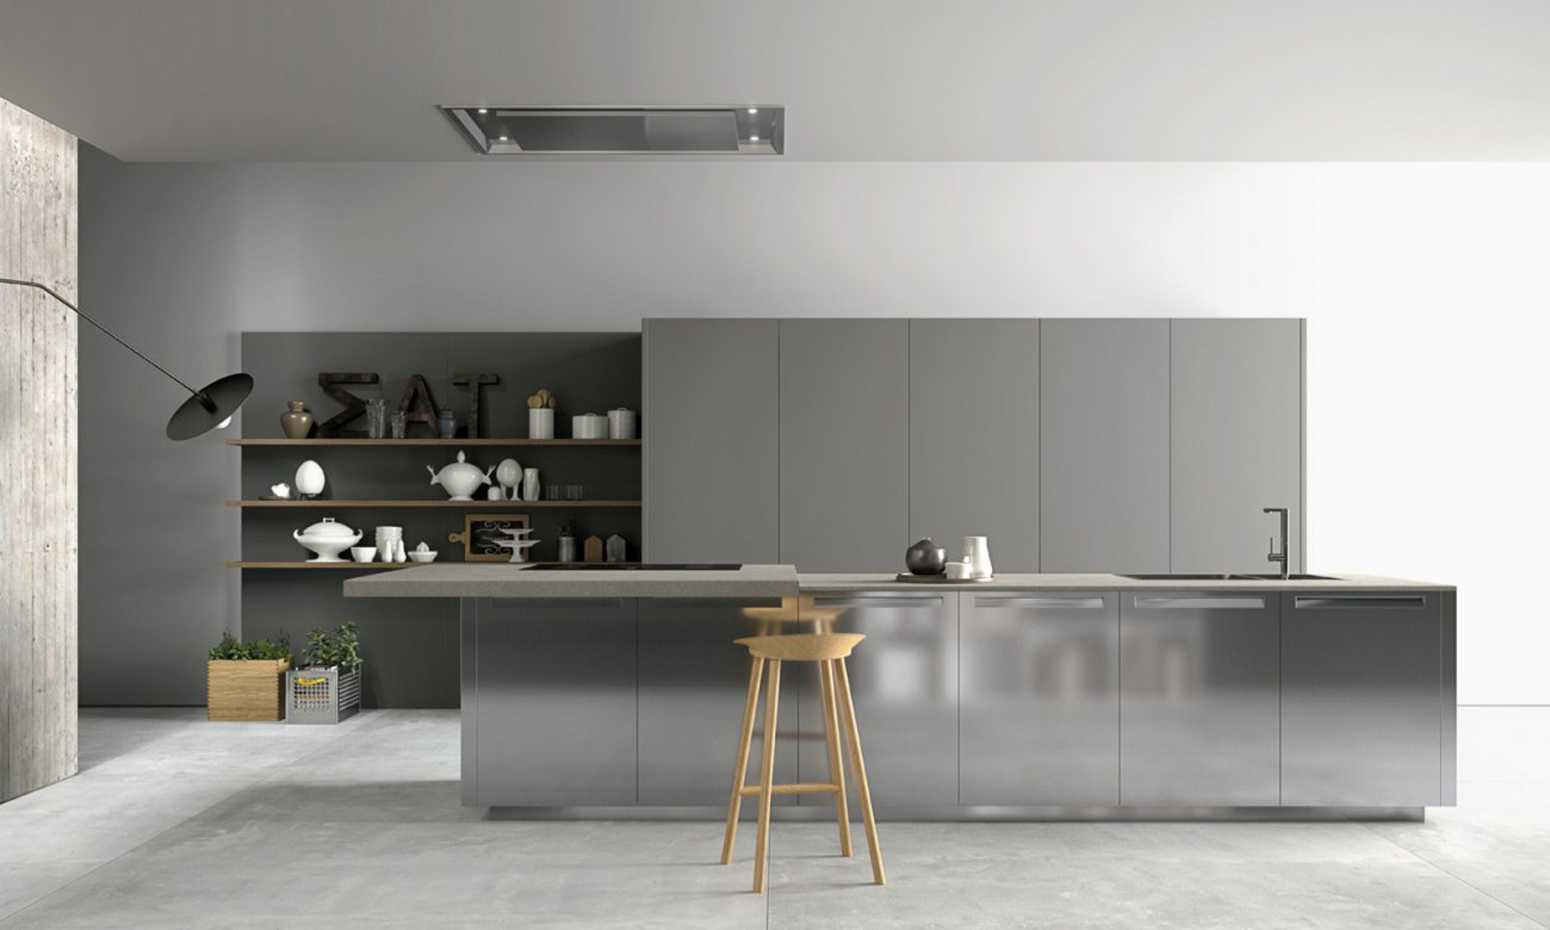 Extra by Doimo Cucine product image 8